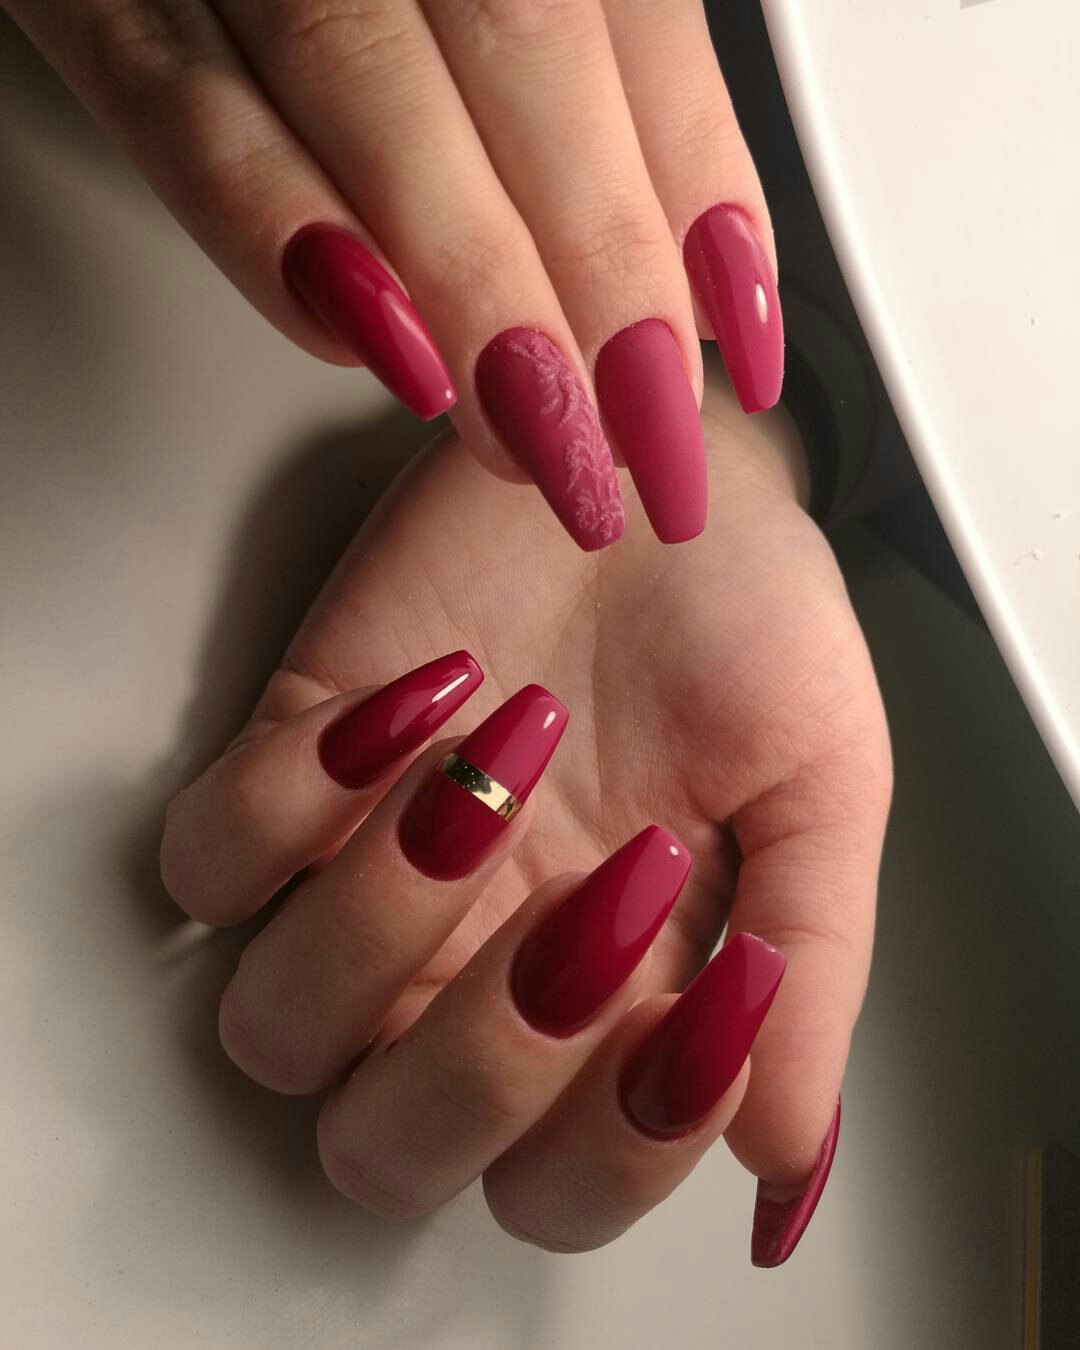 Ballerina Nägel Nail Shapes 2019 New Trends And Designs Of Different Nail Shapes